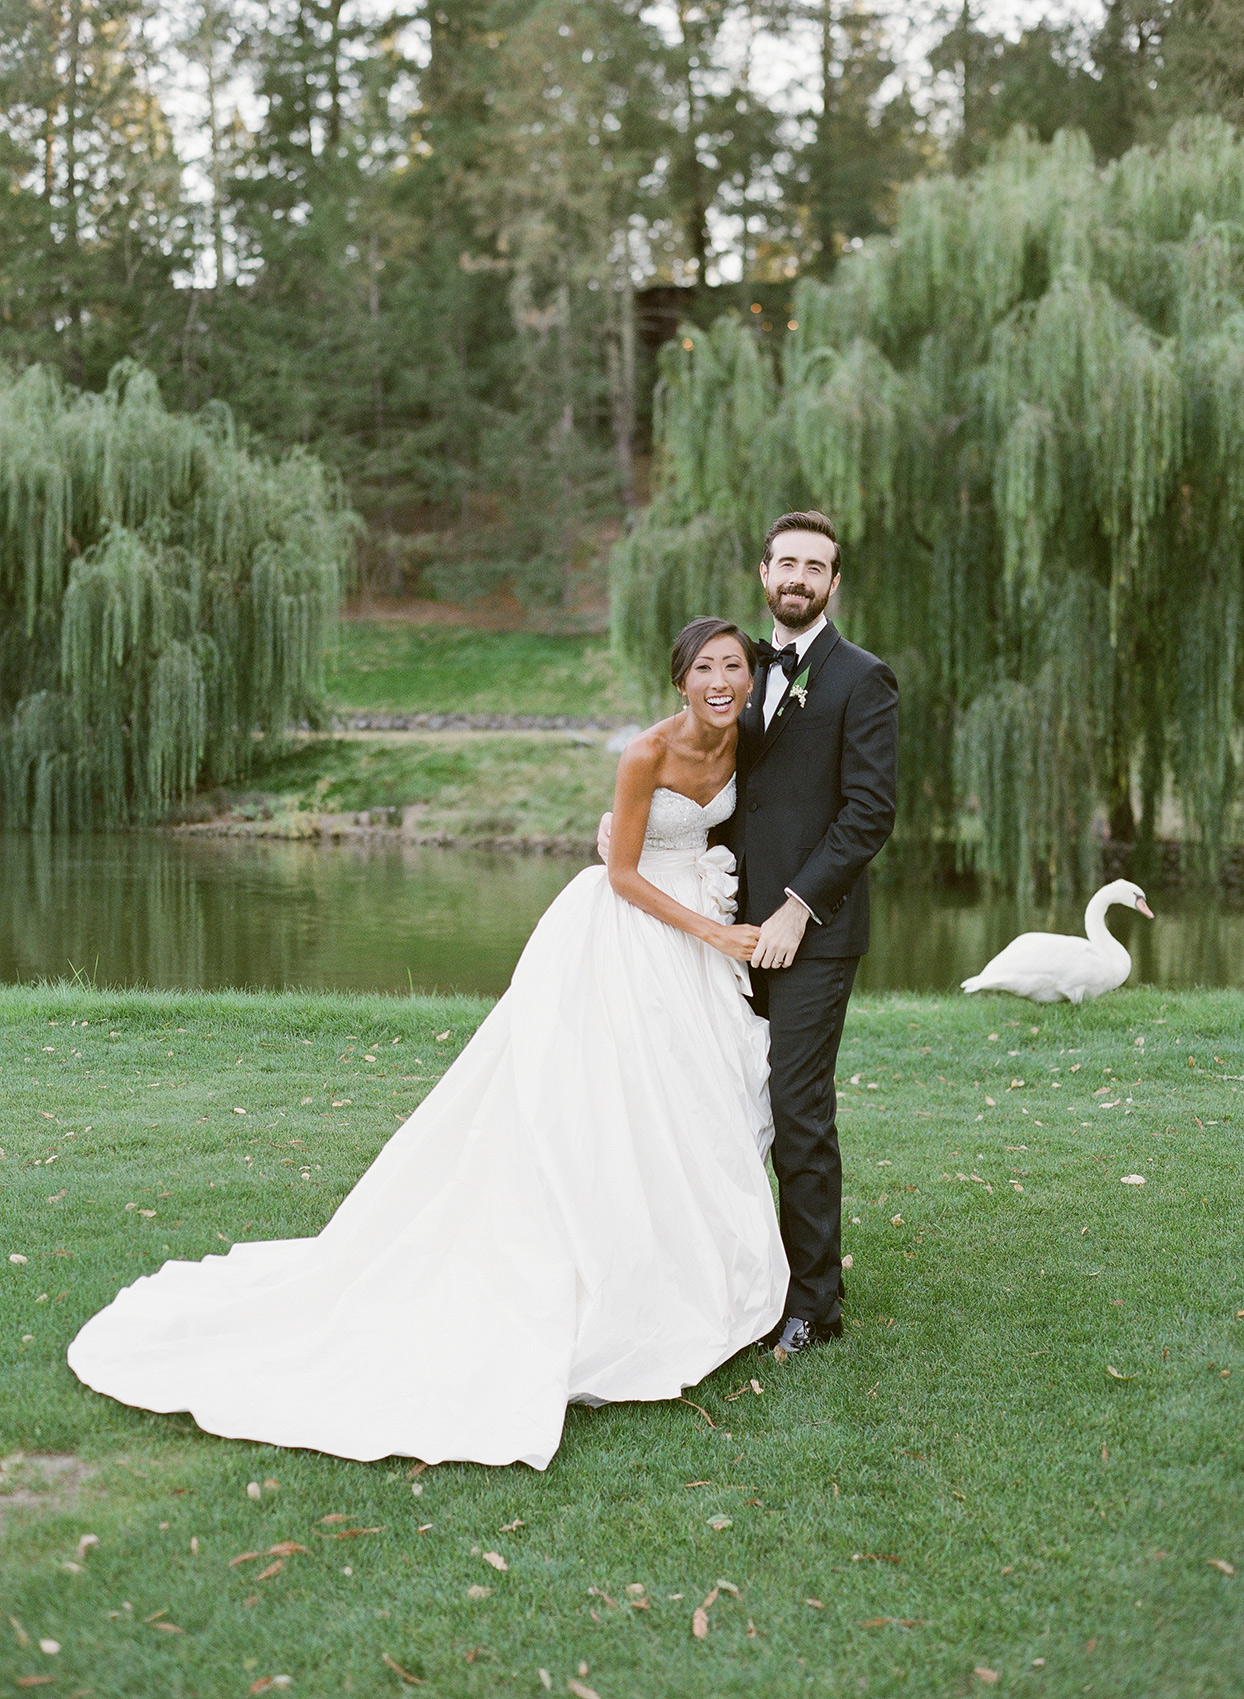 Bride and groom laughing together near a swan